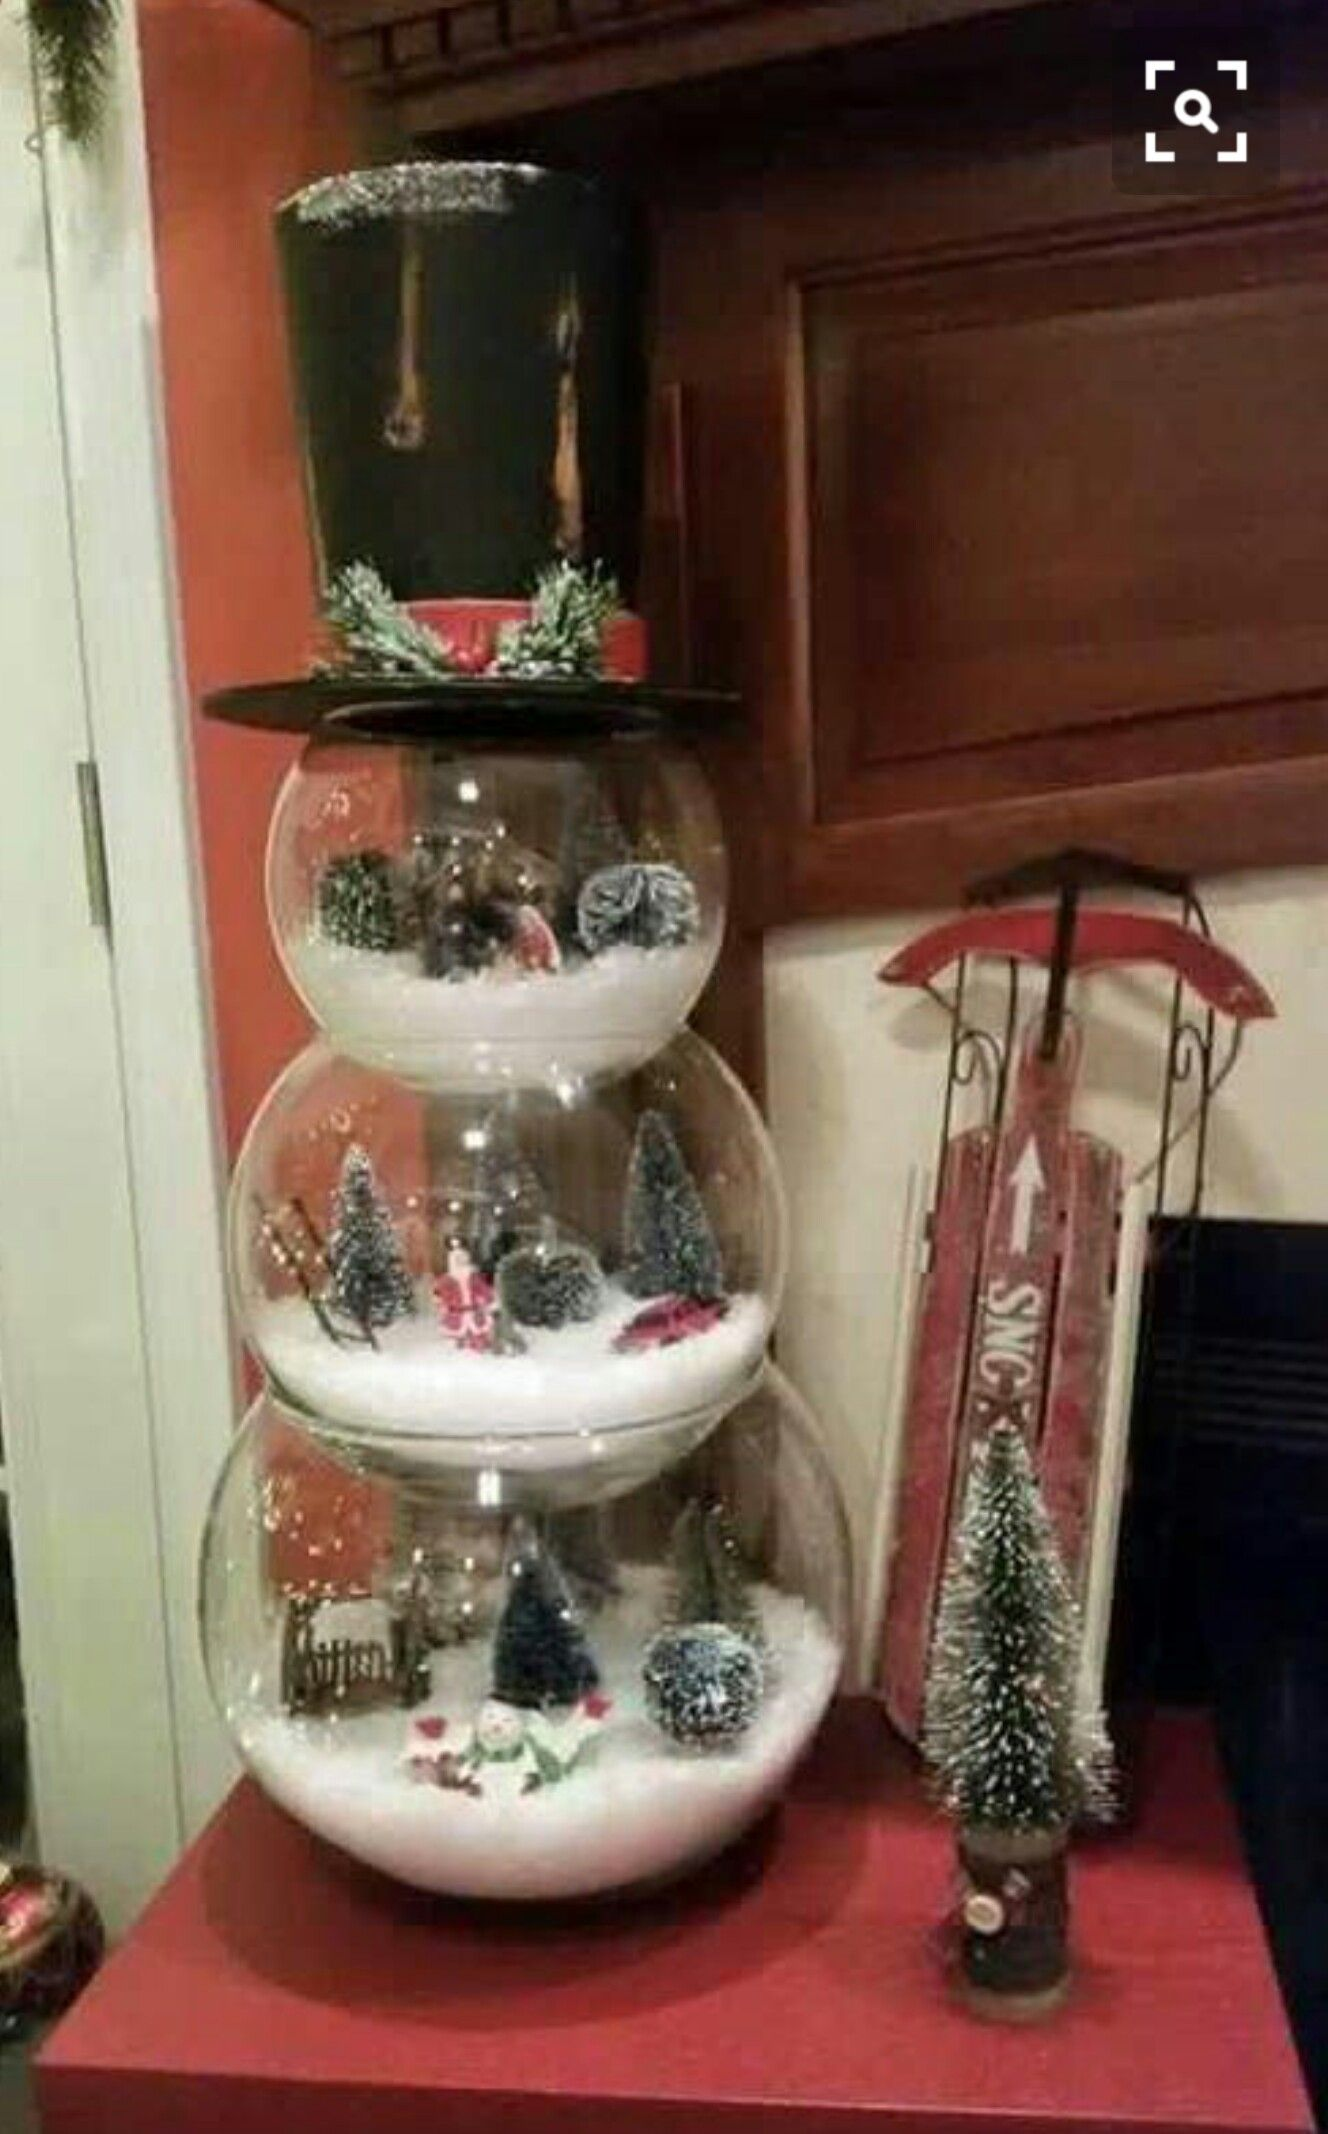 Fish Bowl Snowman Using 3 Diffe Size Bowls Create Your Winter Wonderland Scene And Top It With A Hat Sorry No Instructions But You Get The